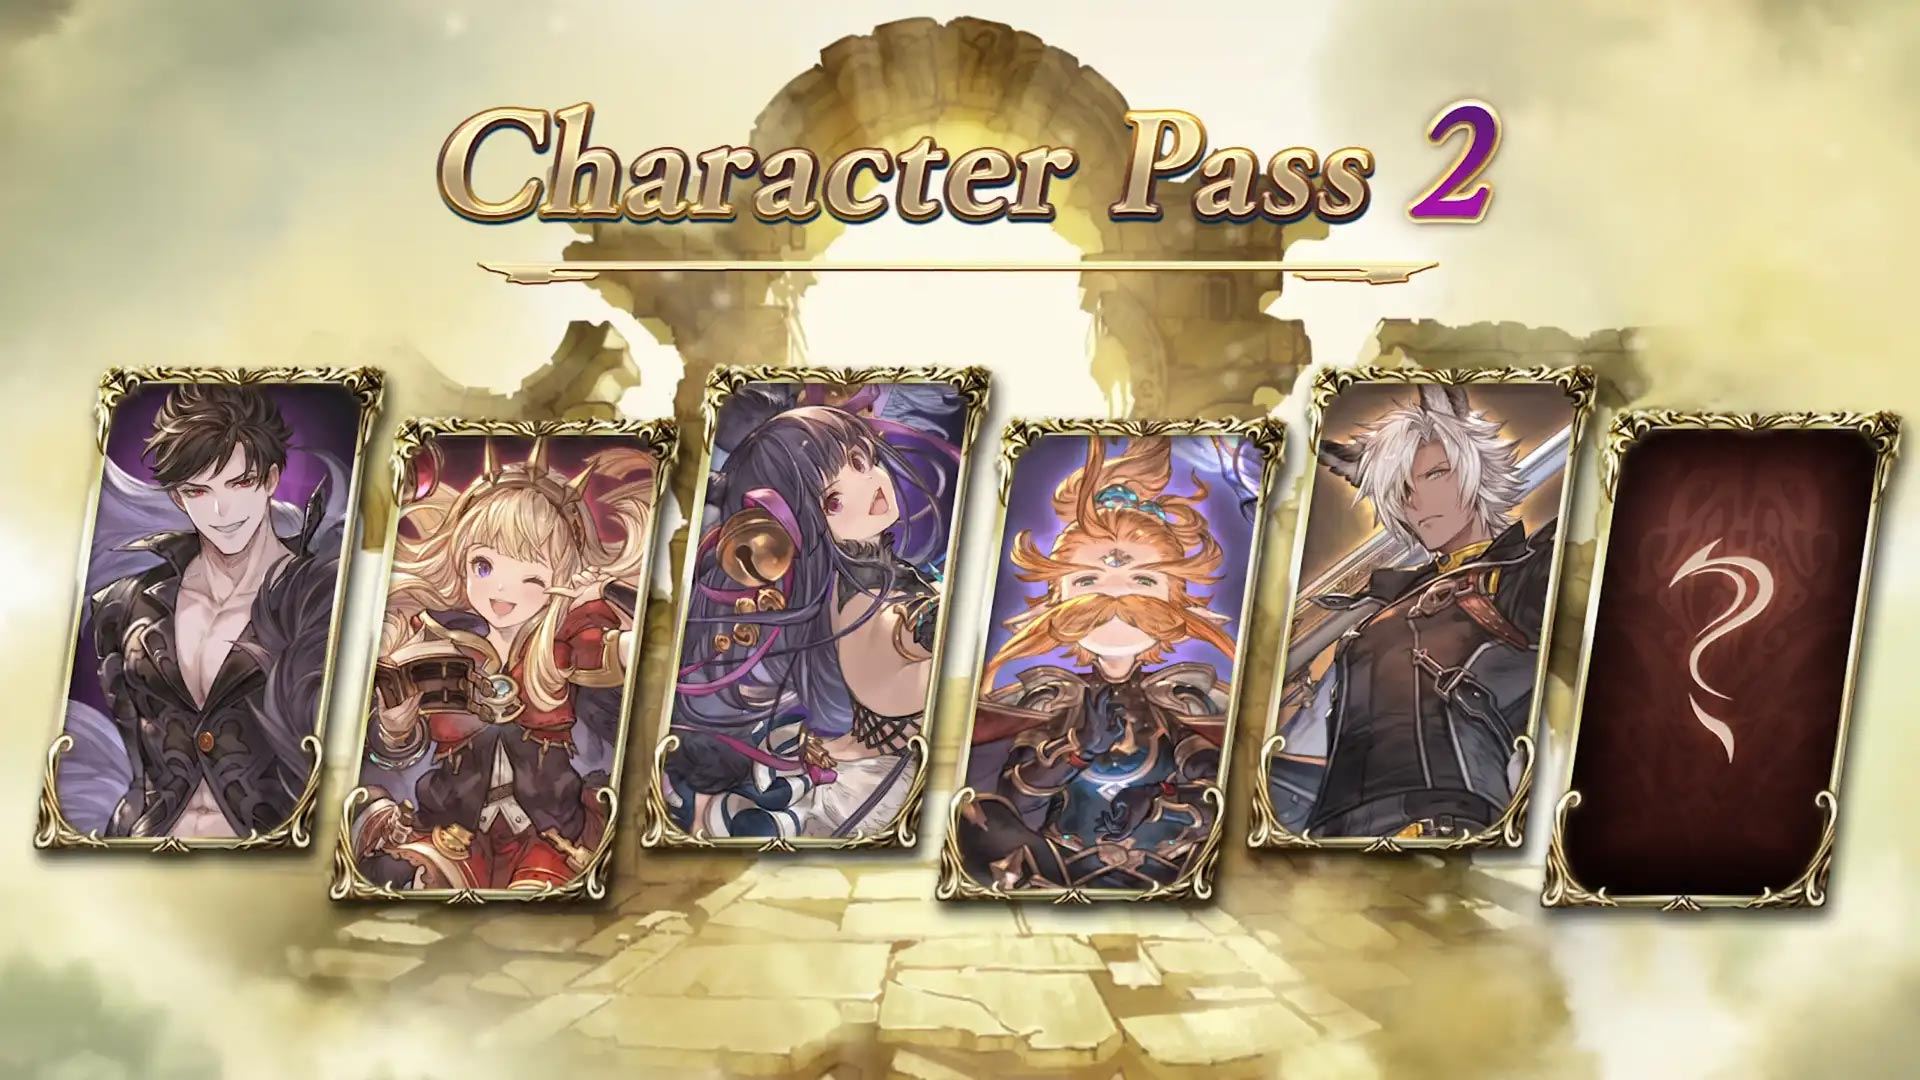 Granblue Fantasy Versus Eustace Reveal Trailer Gallery 4 out of 11 image gallery